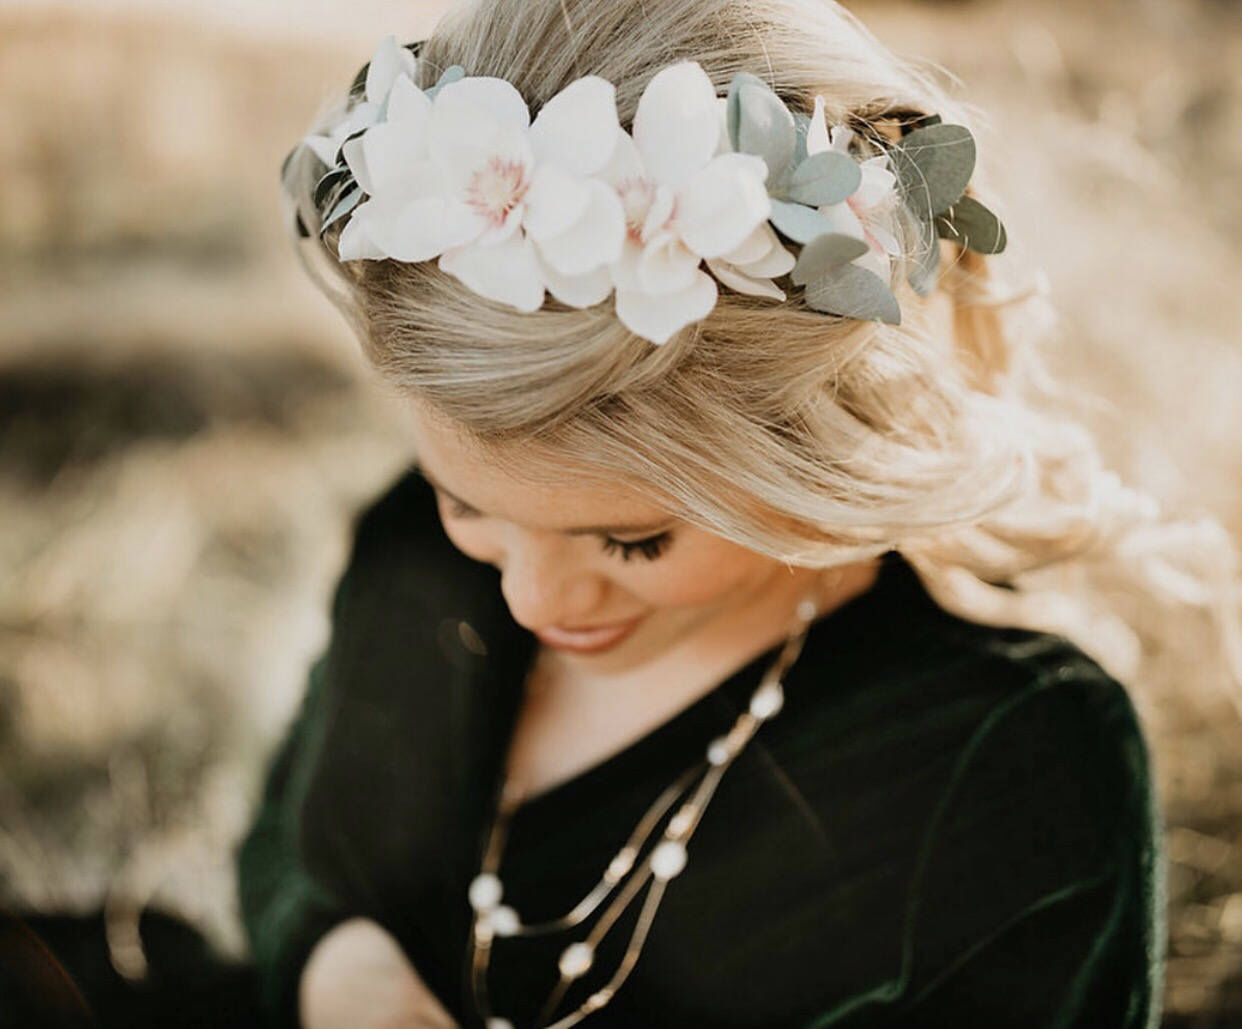 Excited To Share The Latest Addition To My Etsy Shop Flower Crown Magnolia Wedding Flower Crown B Boho Floral Crown Flower Crown Wedding Boho Flower Crown